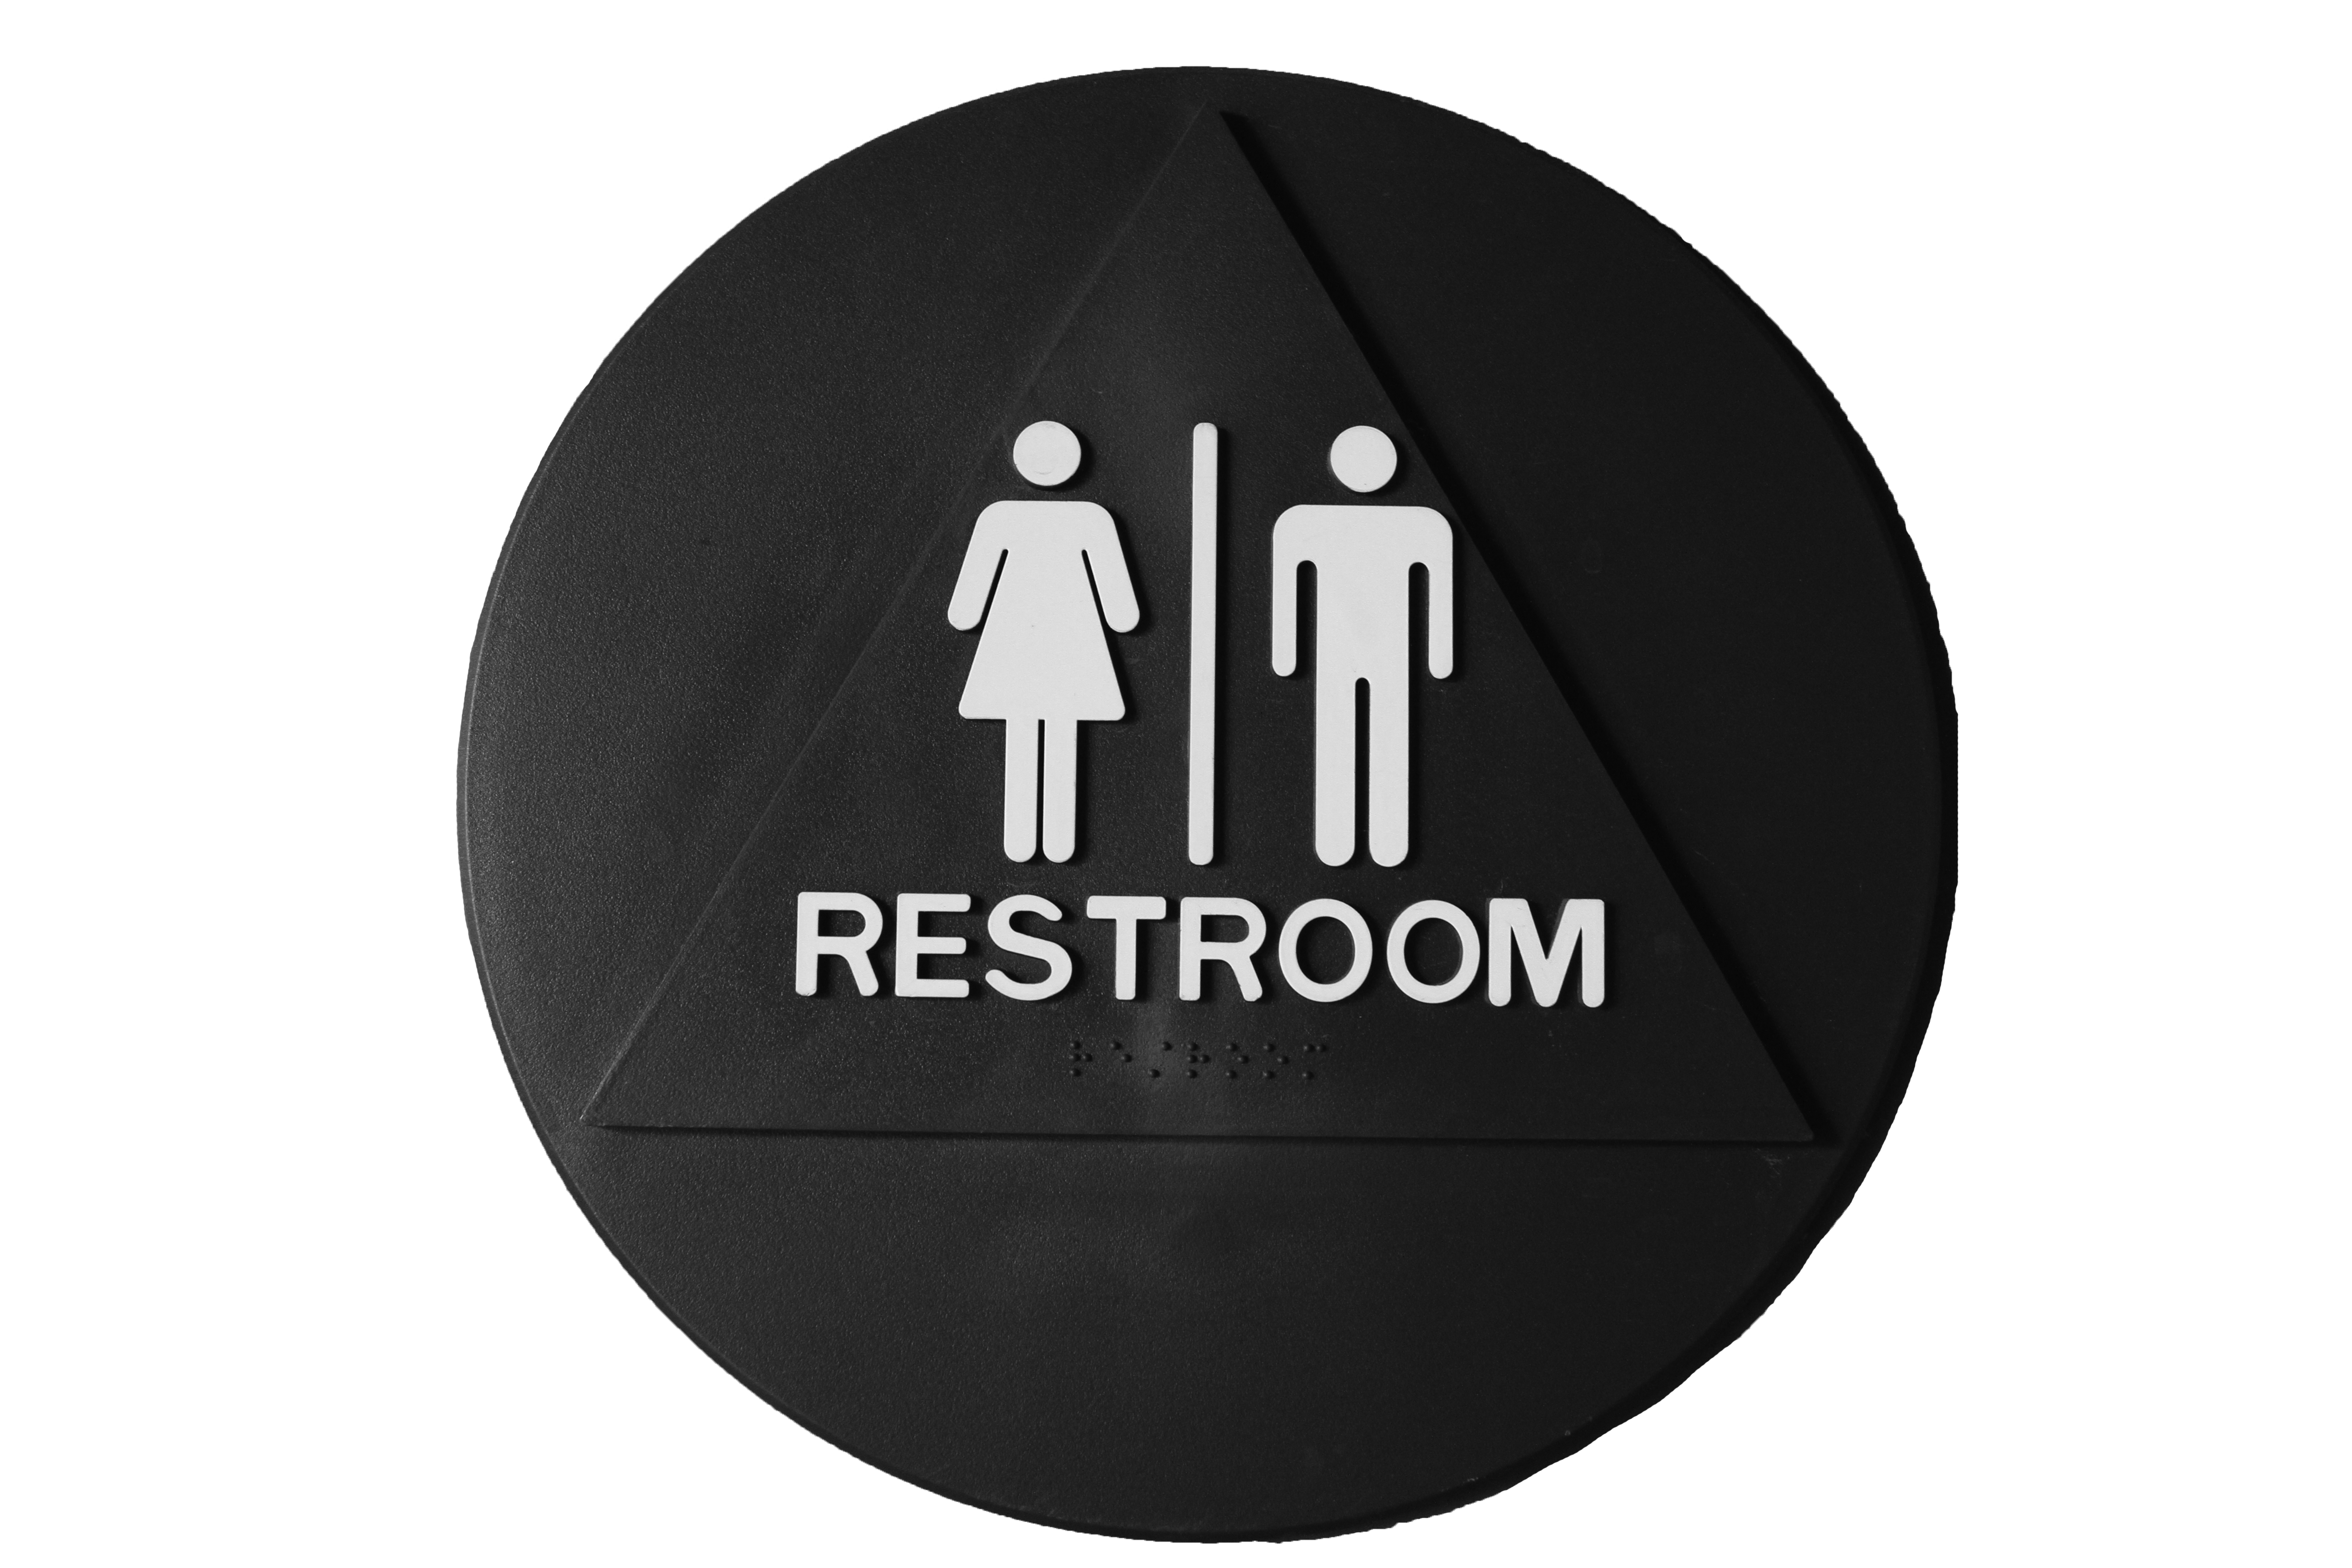 Unisex restrooms installed at Gunn